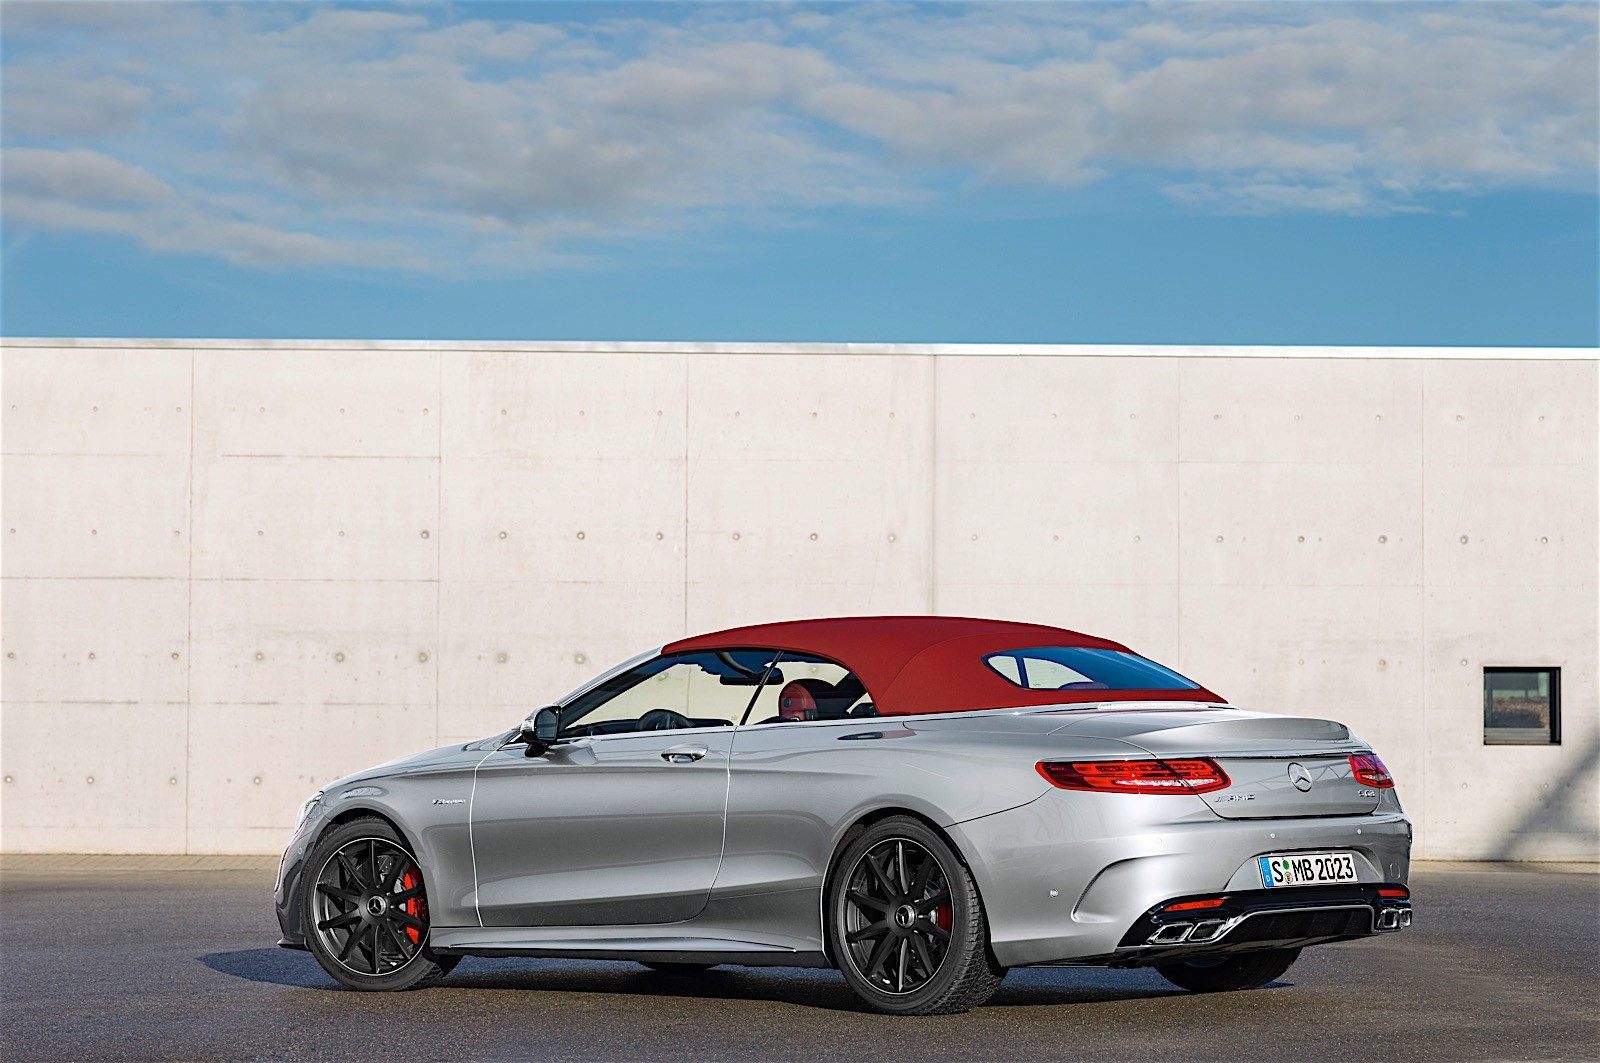 mercedes amg unveils anniversary s63 cabriolet edition 130. Black Bedroom Furniture Sets. Home Design Ideas